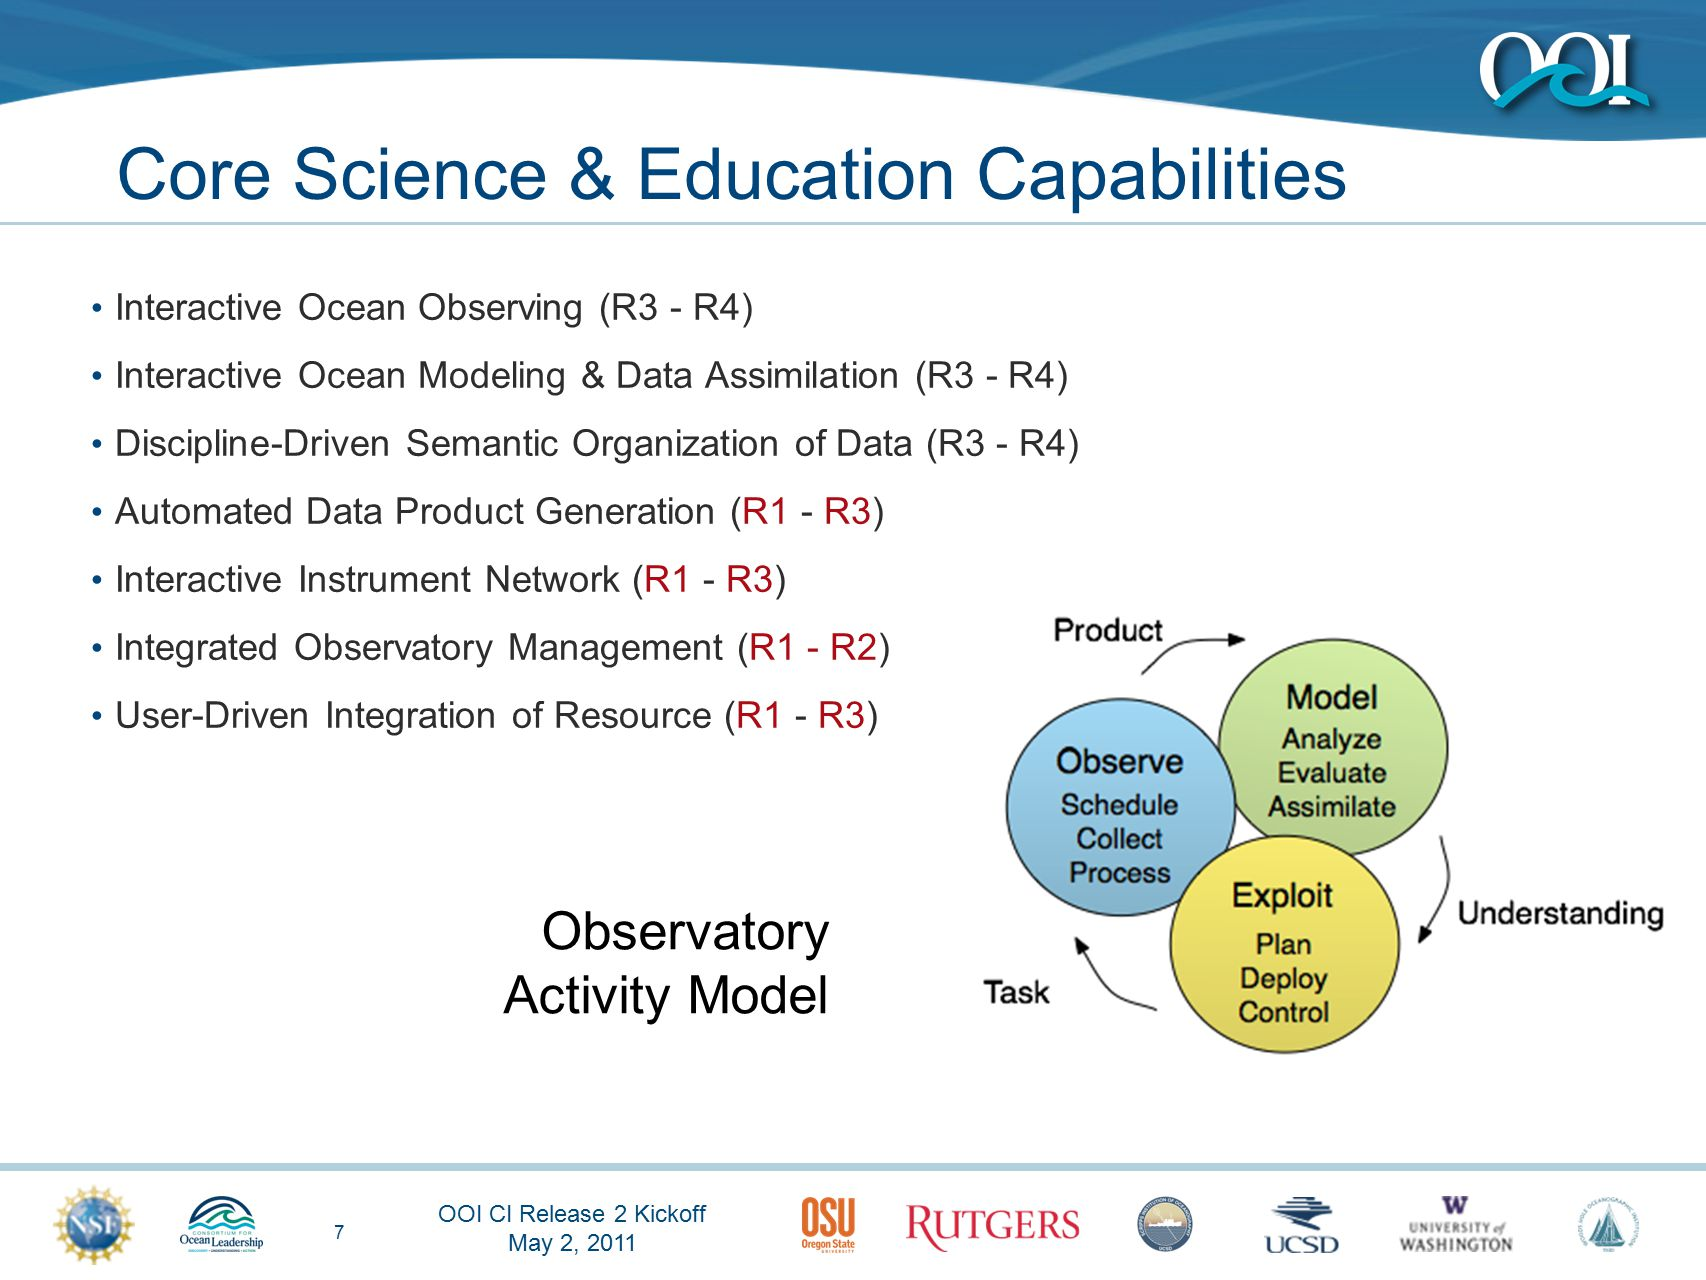 OOI CI Release 2 Kickoff May 2, 2011 7 Core Science & Education Capabilities Interactive Ocean Observing (R3 - R4) Interactive Ocean Modeling & Data Assimilation (R3 - R4) Discipline-Driven Semantic Organization of Data (R3 - R4) Automated Data Product Generation (R1 - R3) Interactive Instrument Network (R1 - R3) Integrated Observatory Management (R1 - R2) User-Driven Integration of Resource (R1 - R3) Observatory Activity Model